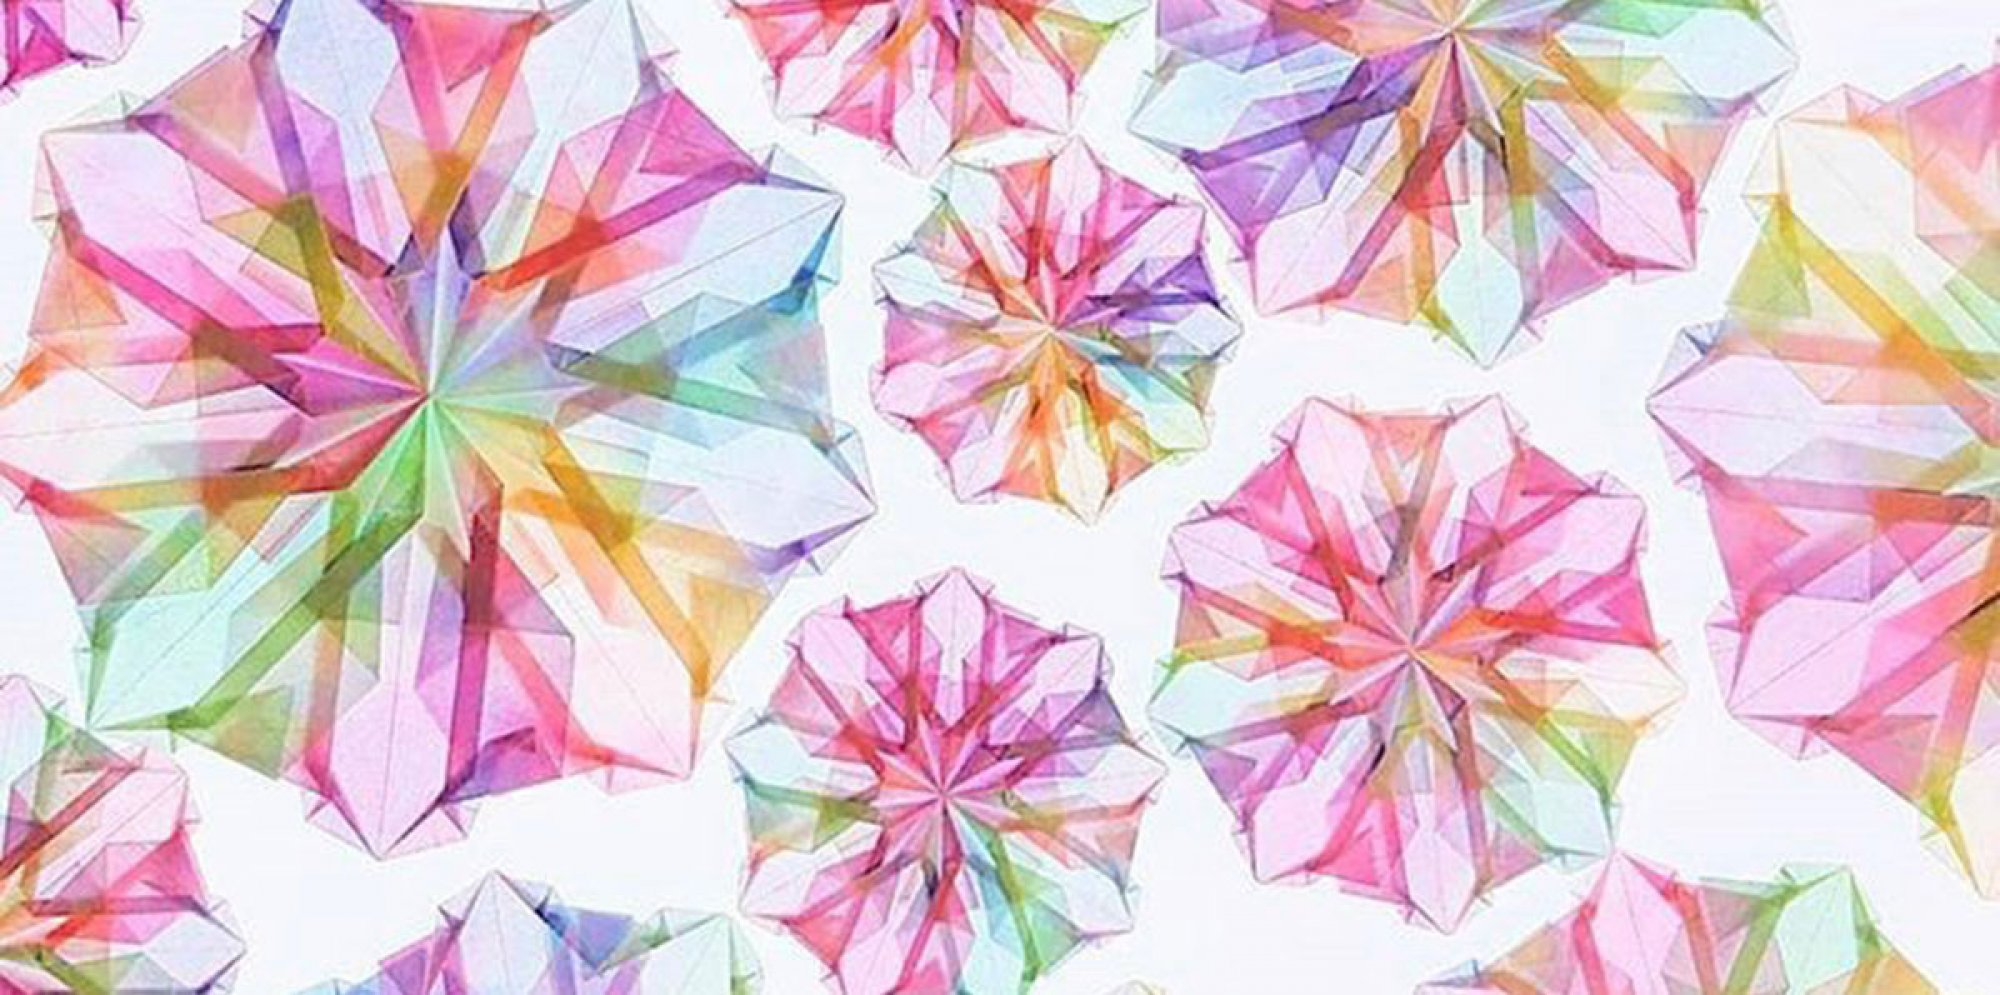 mandals or round crystal structures, resembling flowers, in shades of transparent pink and rose